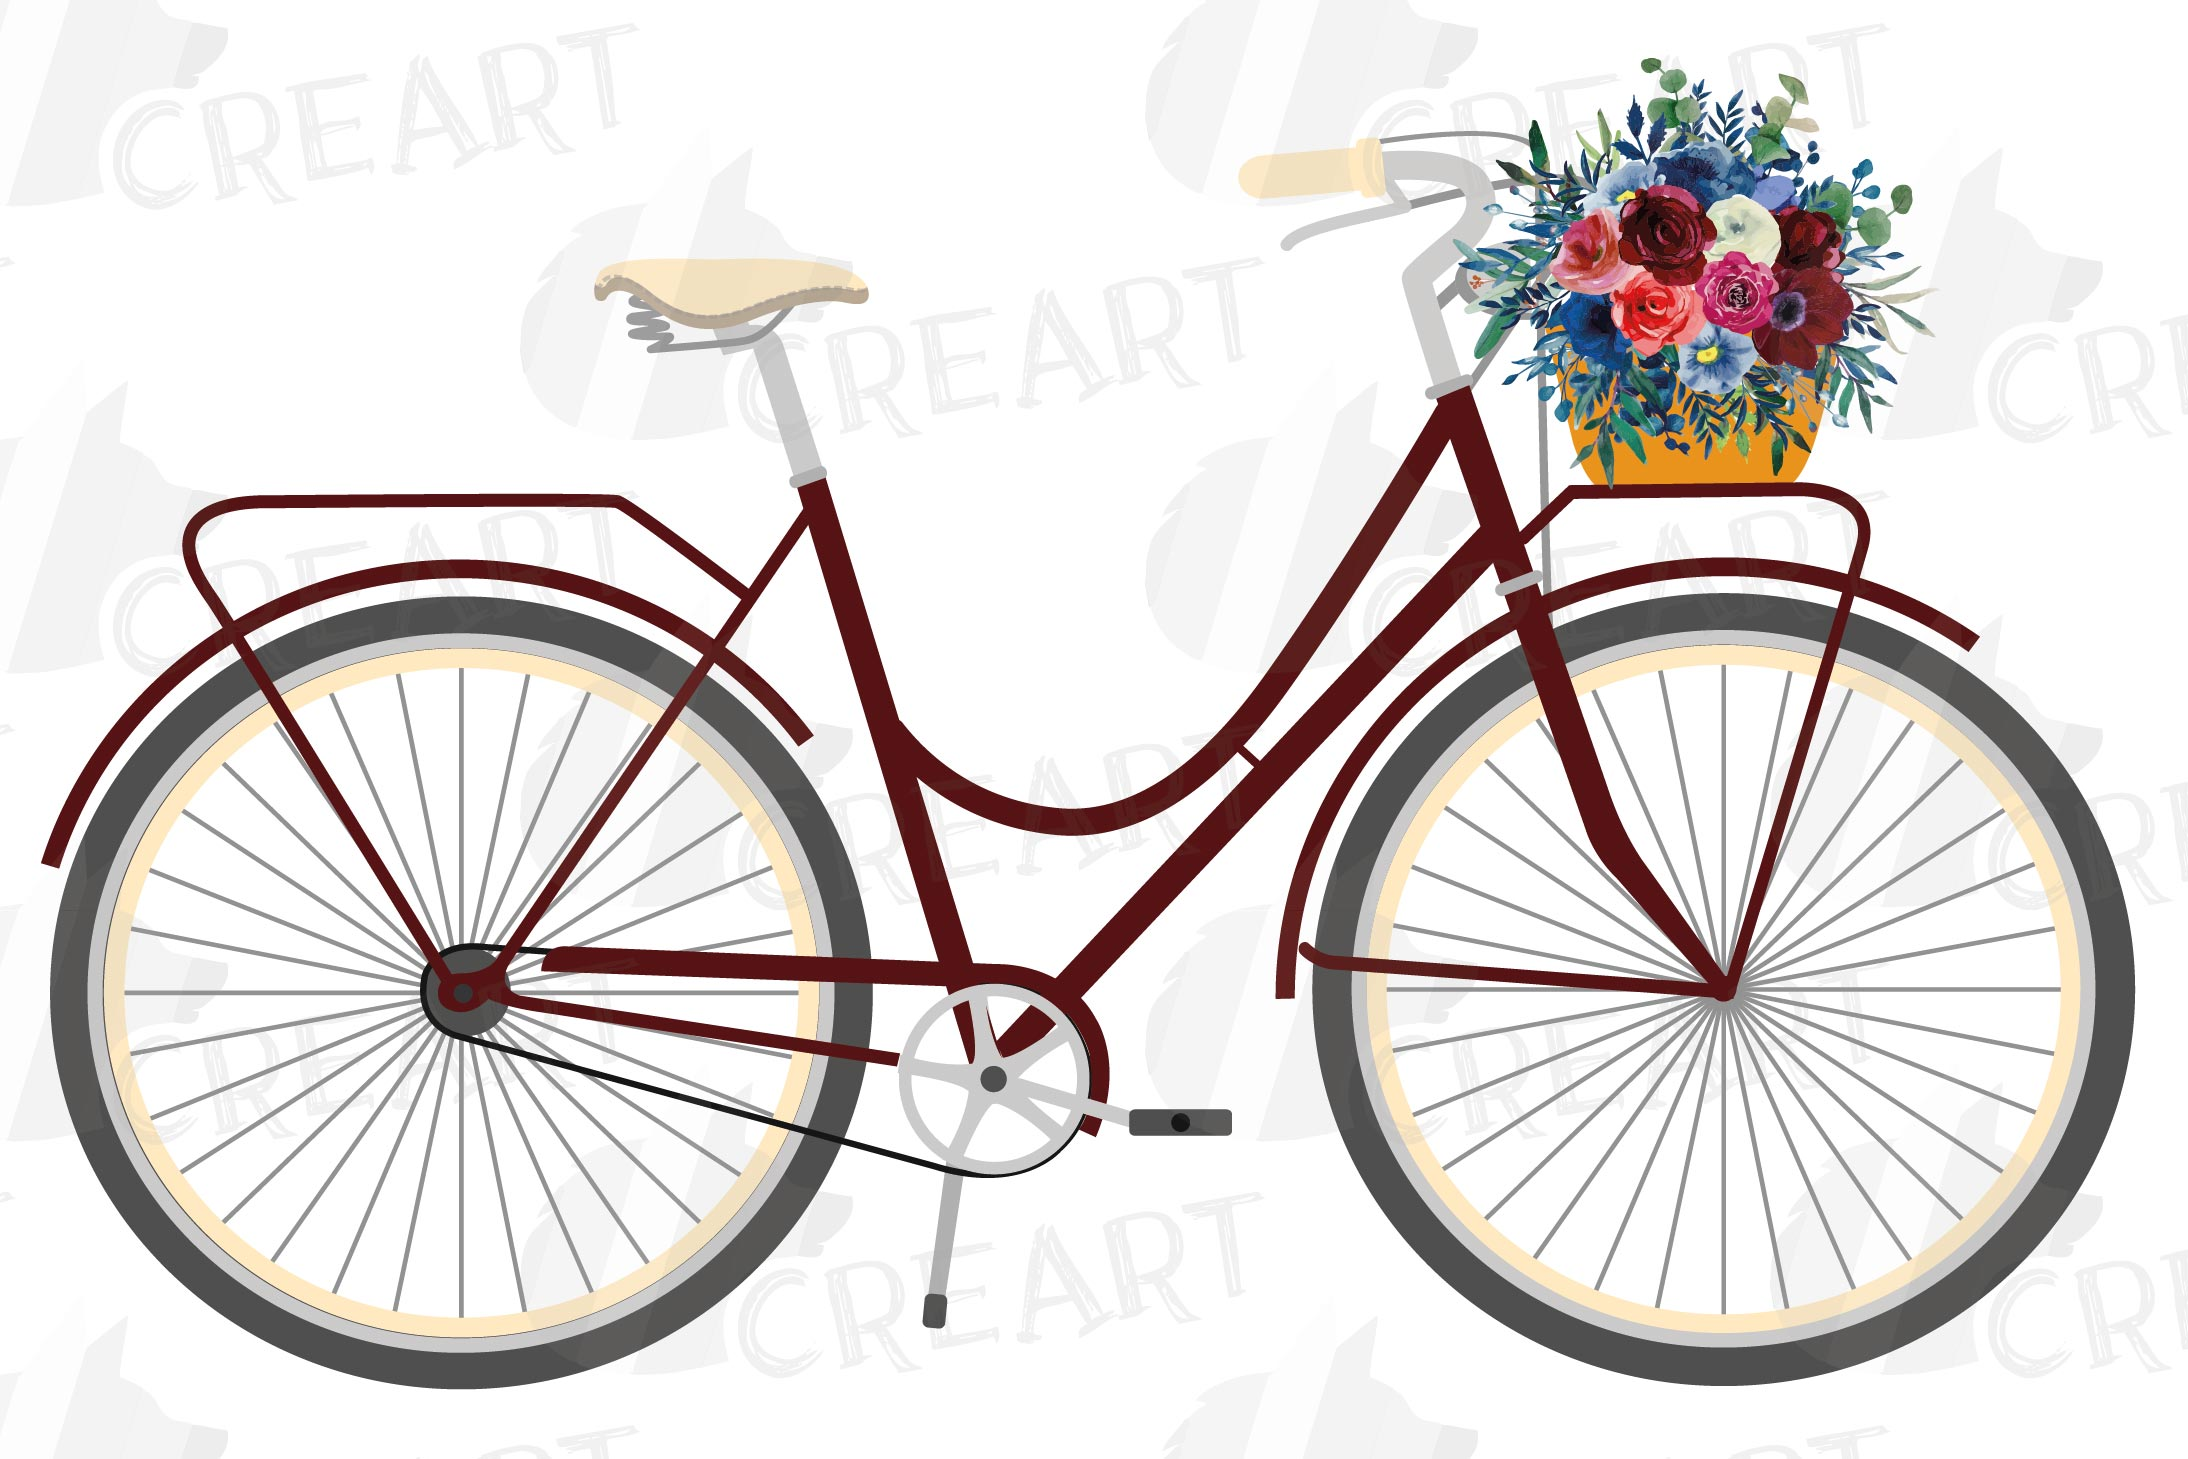 Floral bicycles with watercolor bouquets decoration clip art example image 7